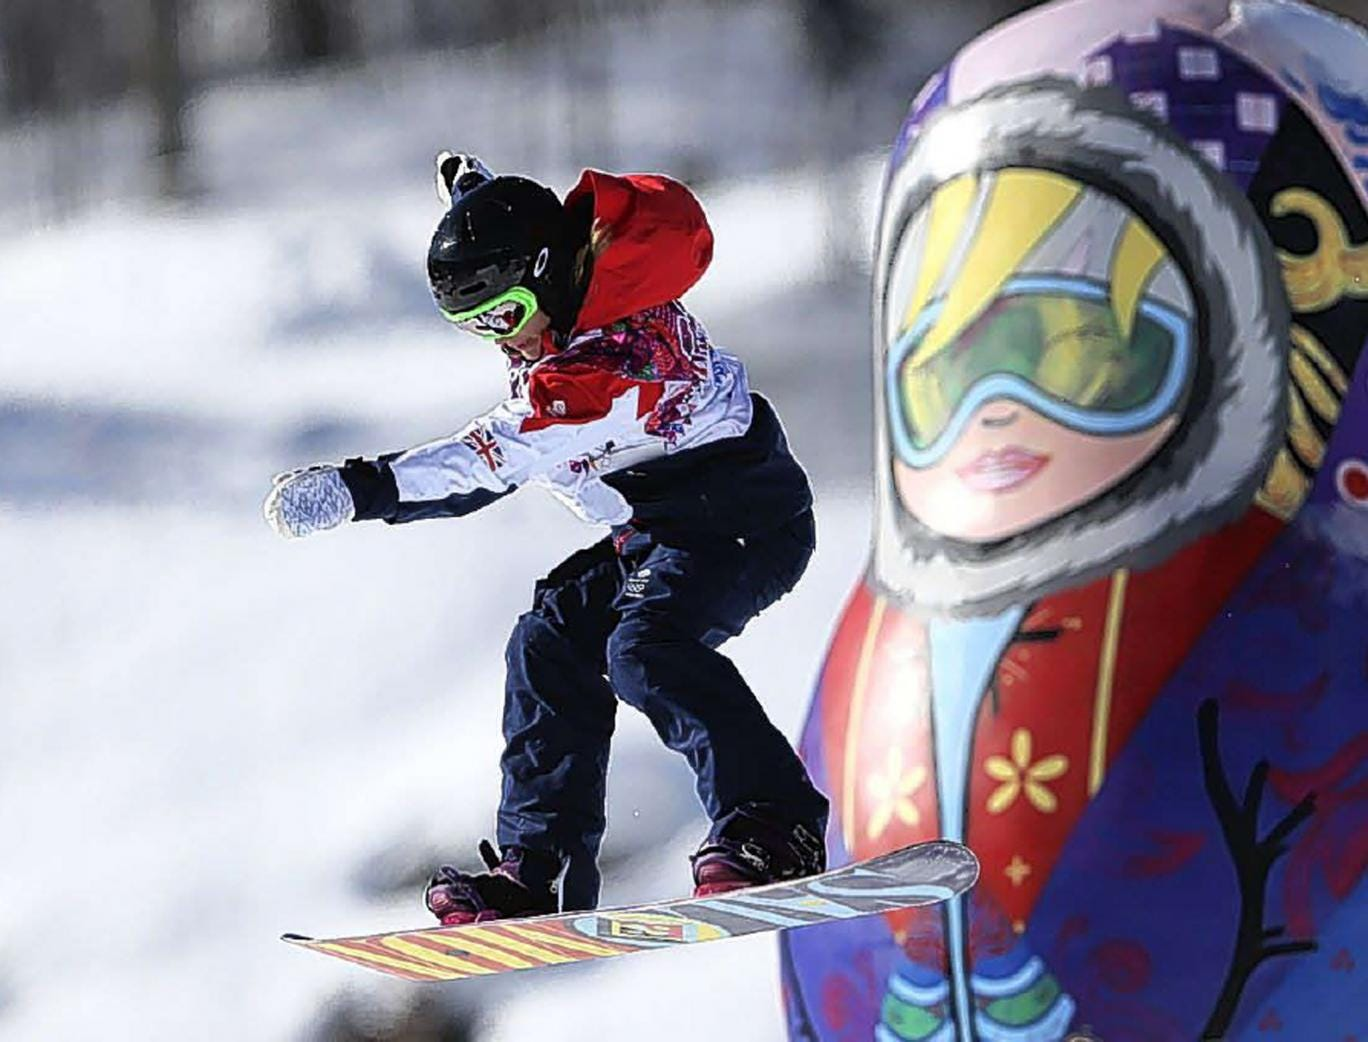 A competitor takes a jump past a giant matryoshka doll during a snowboard slopestyle training session at the Rosa Khutor Extreme Park in Krasnaya